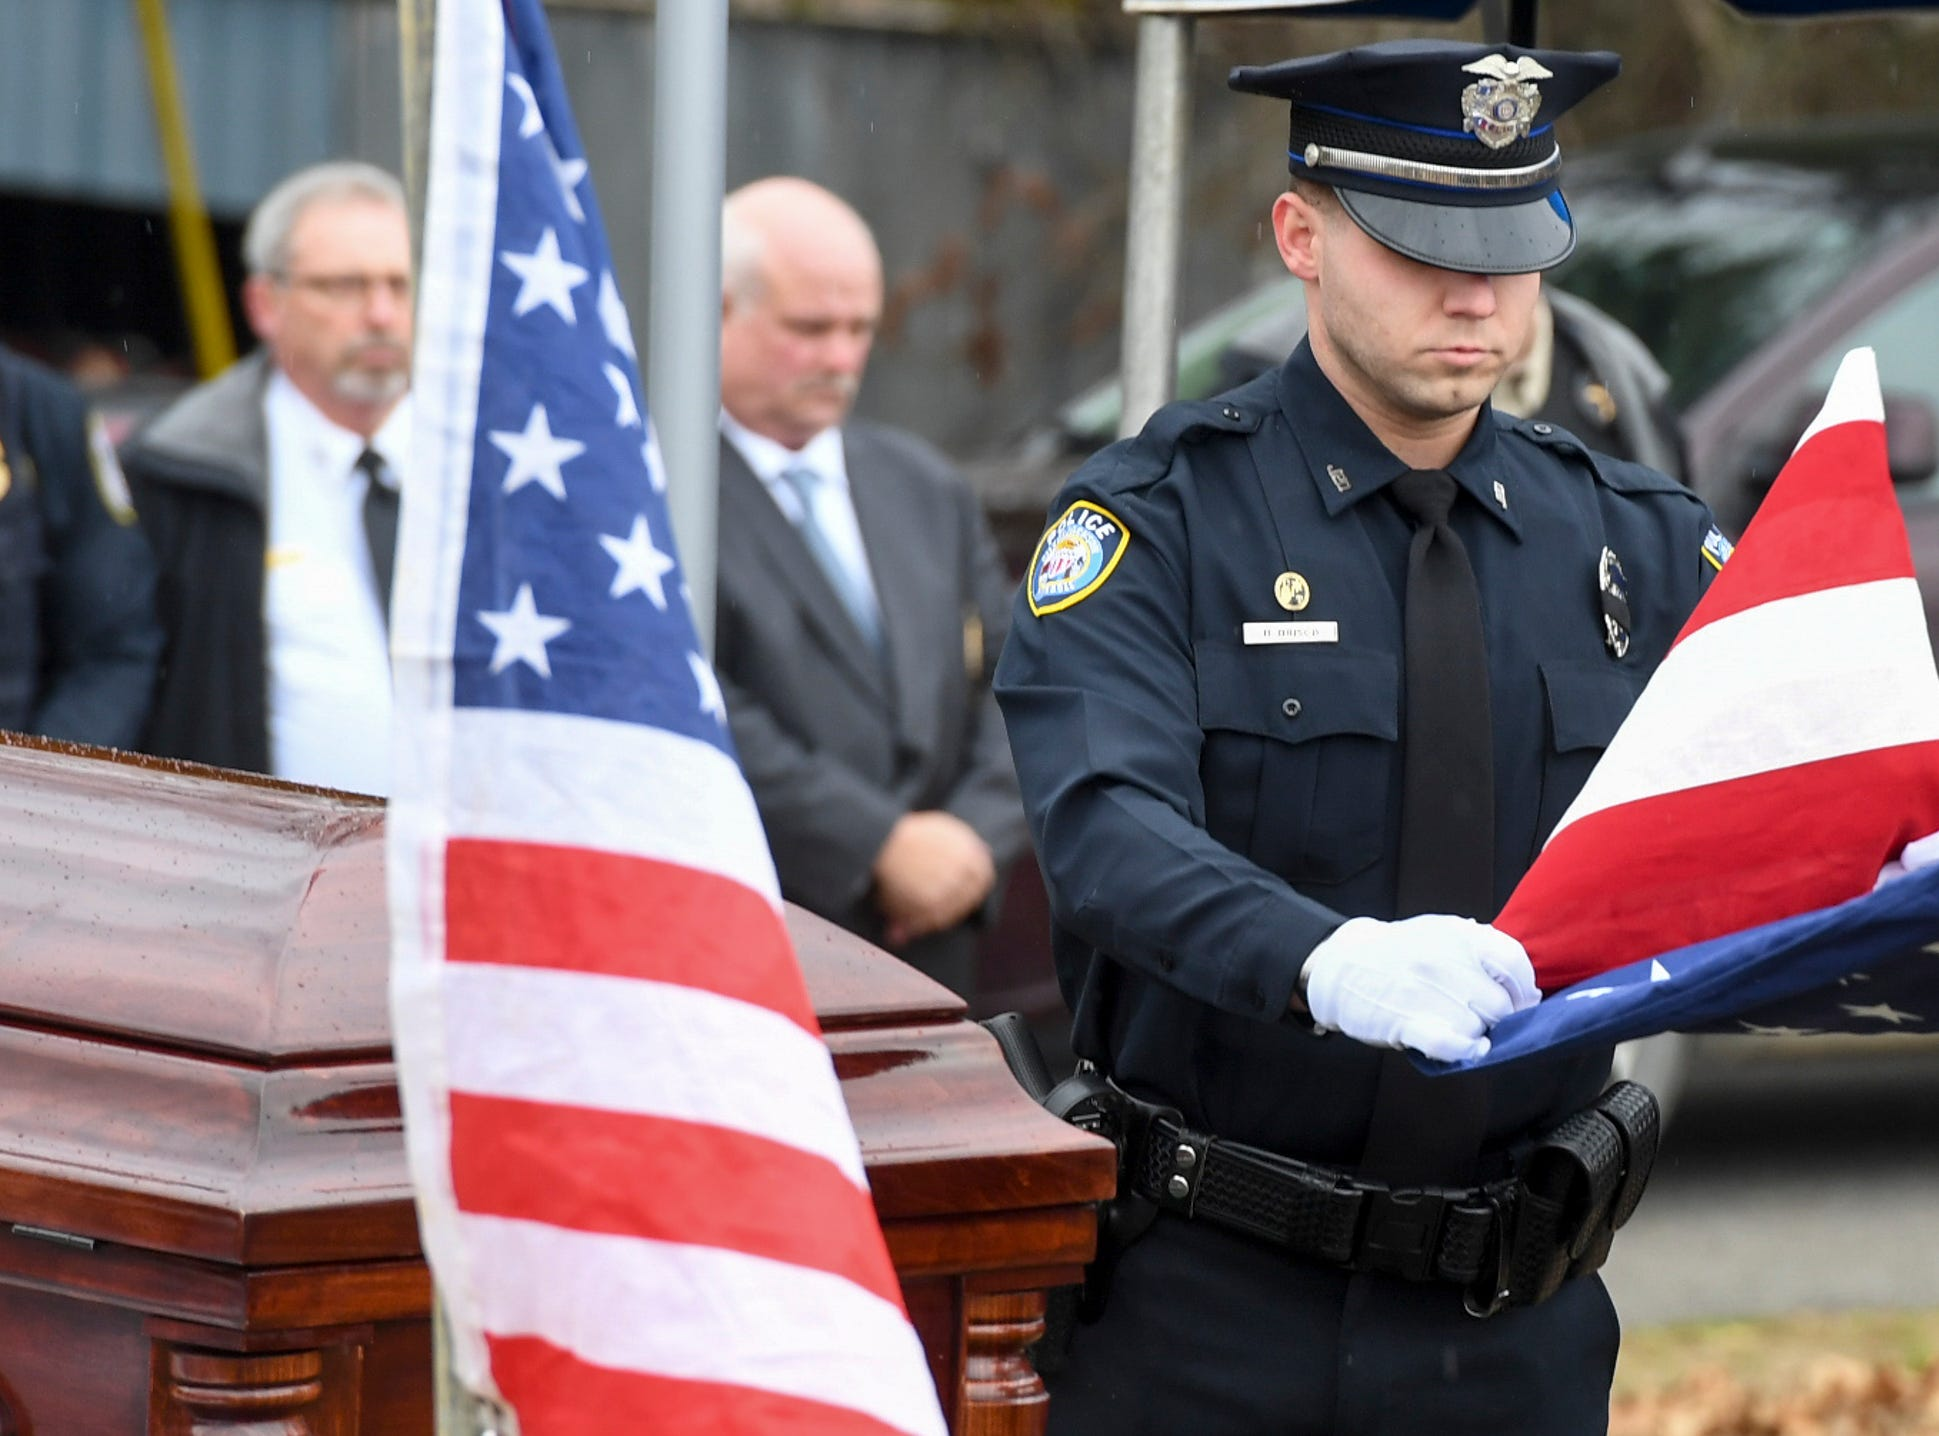 The Celebration of Life service for Assistant Alamo Police Chief Phillip Harold Park was held at Alamo First Christian Church, Friday, Jan. 11, 2019.